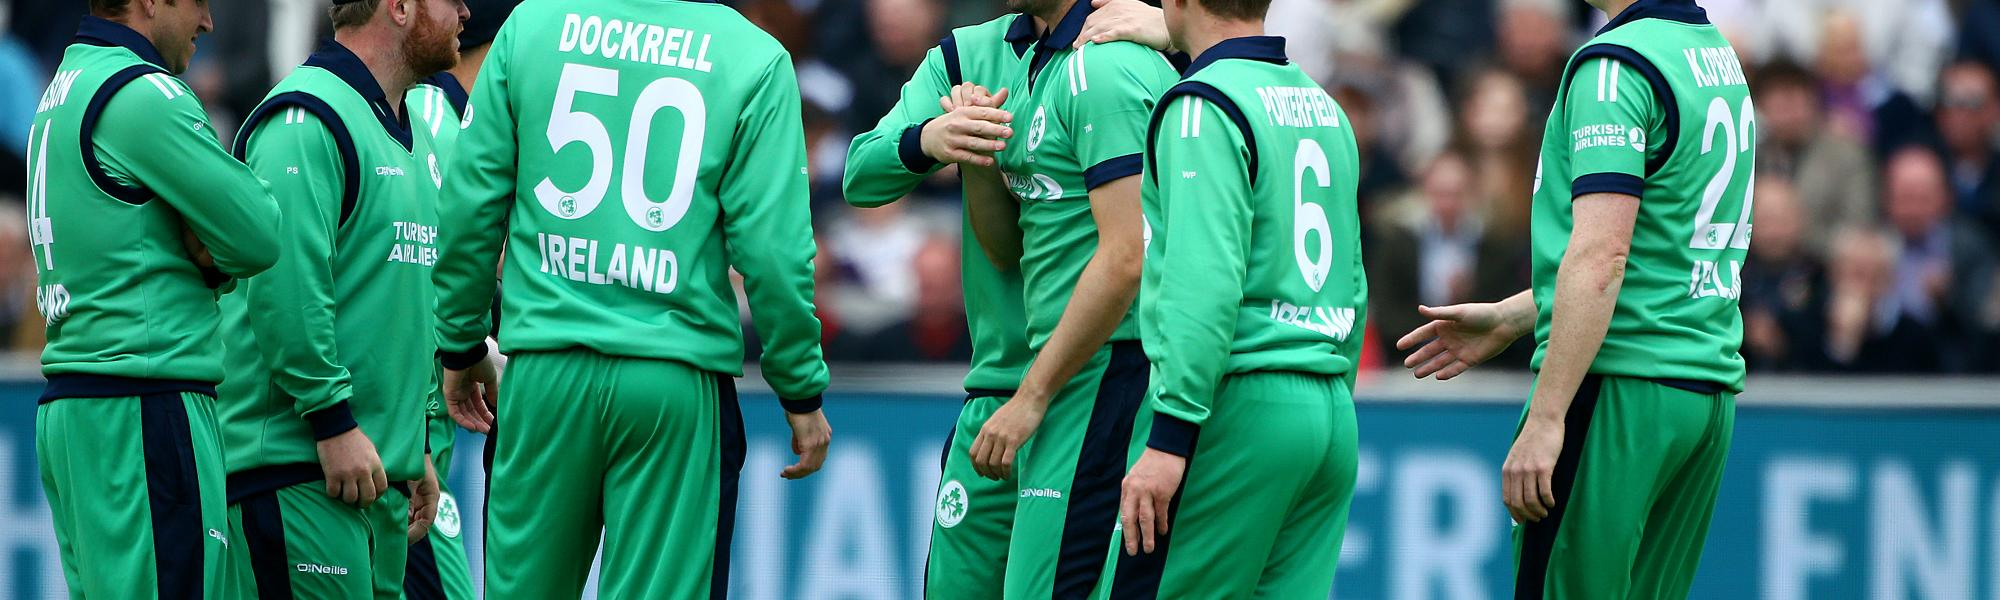 Ireland is ranked 12th in the ICC ODI rankings.